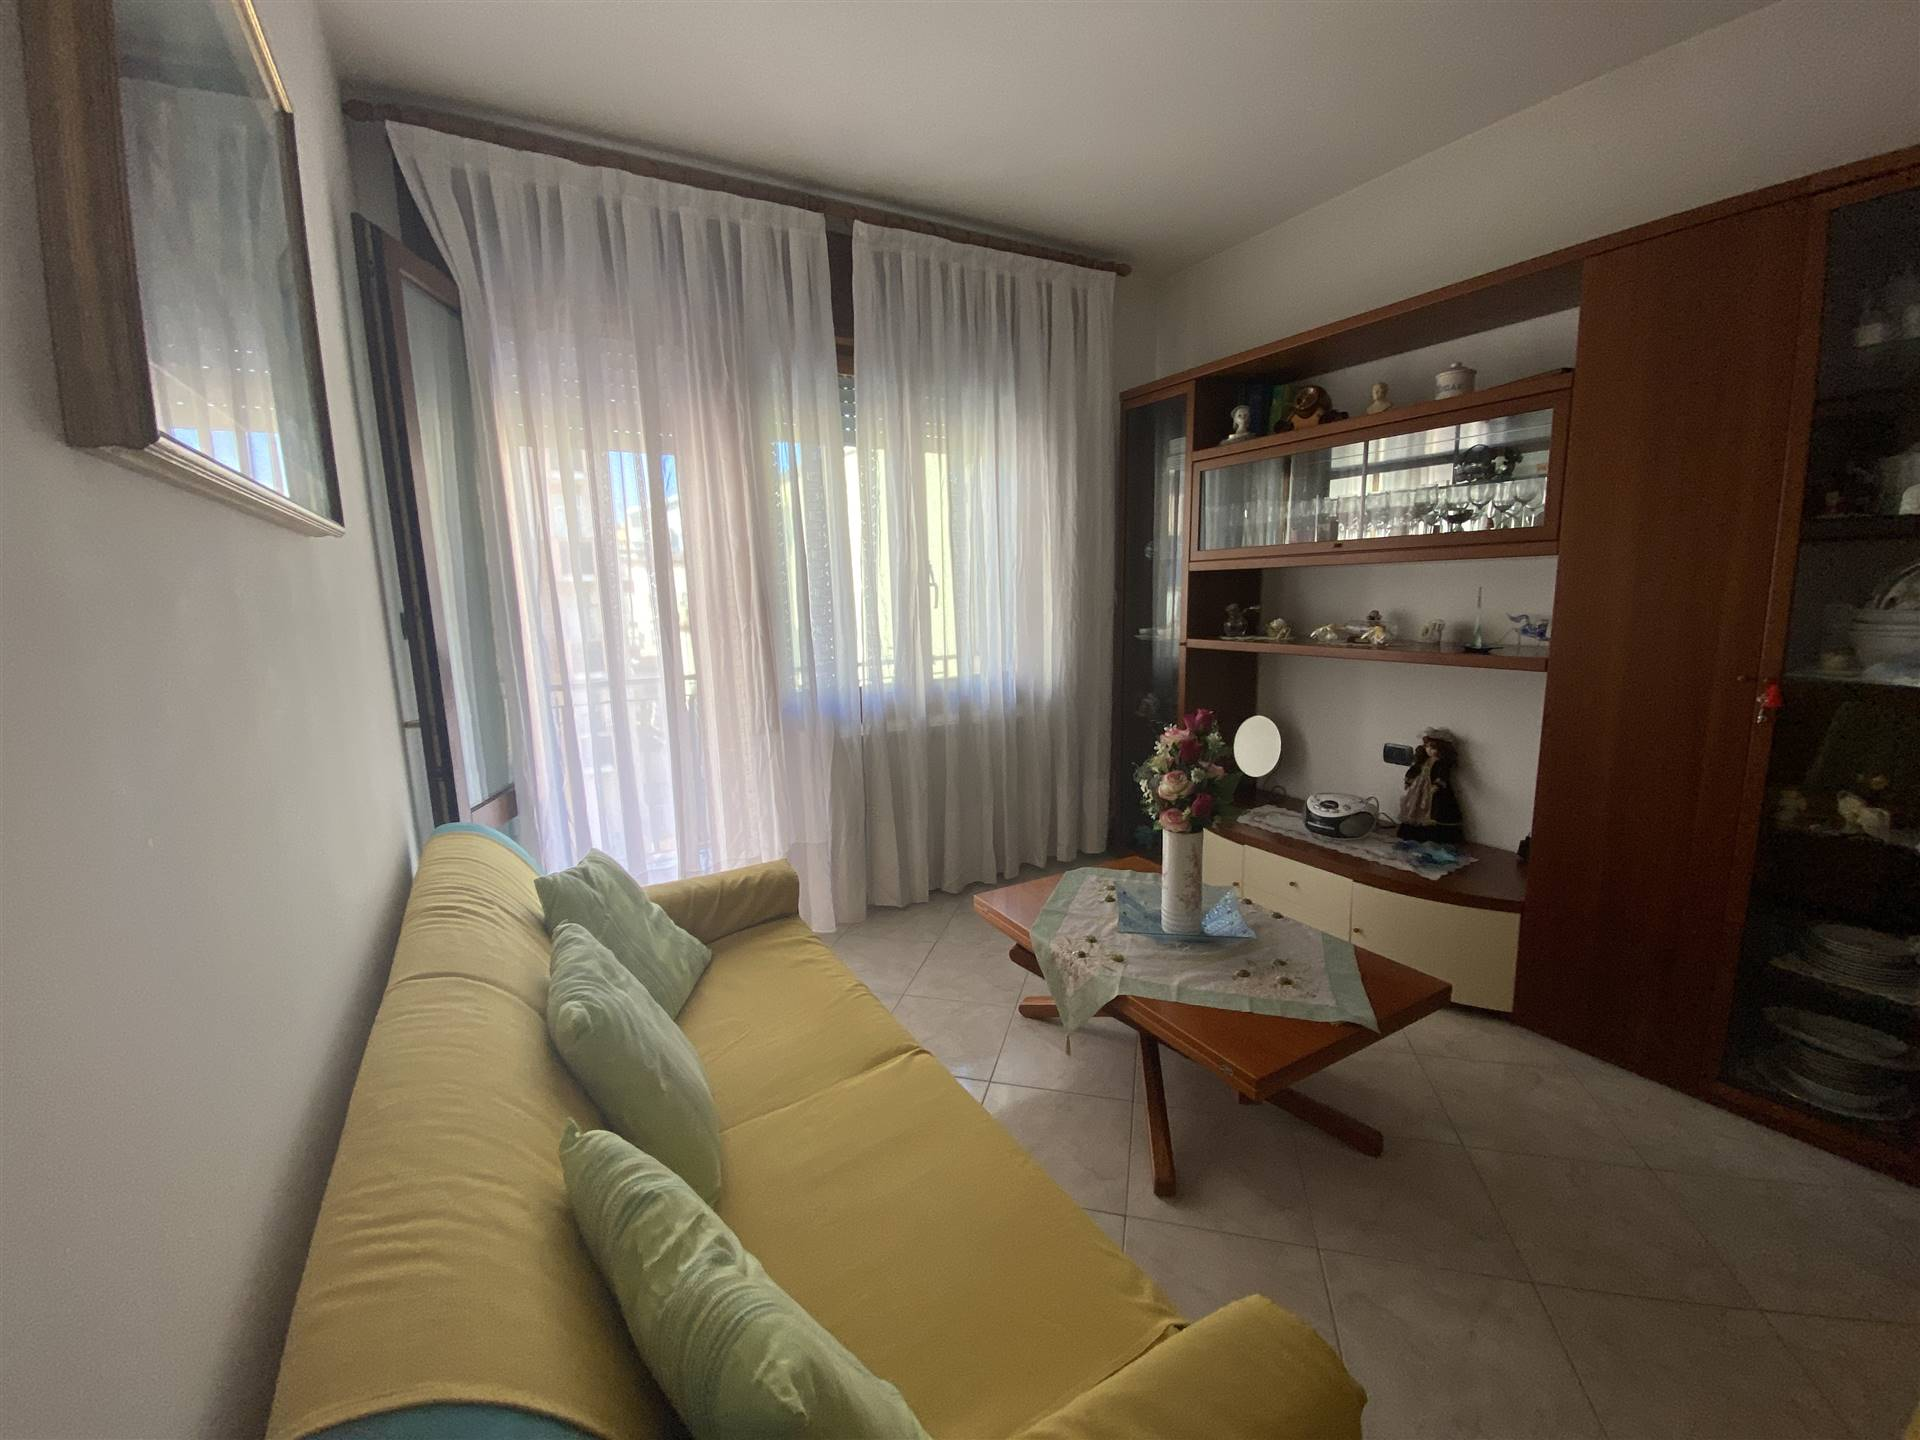 SOTTOMARINA, CHIOGGIA, Apartment for rent, Habitable, Heating Individual heating system, Energetic class: G, placed at 2°, composed by: 3 Rooms,